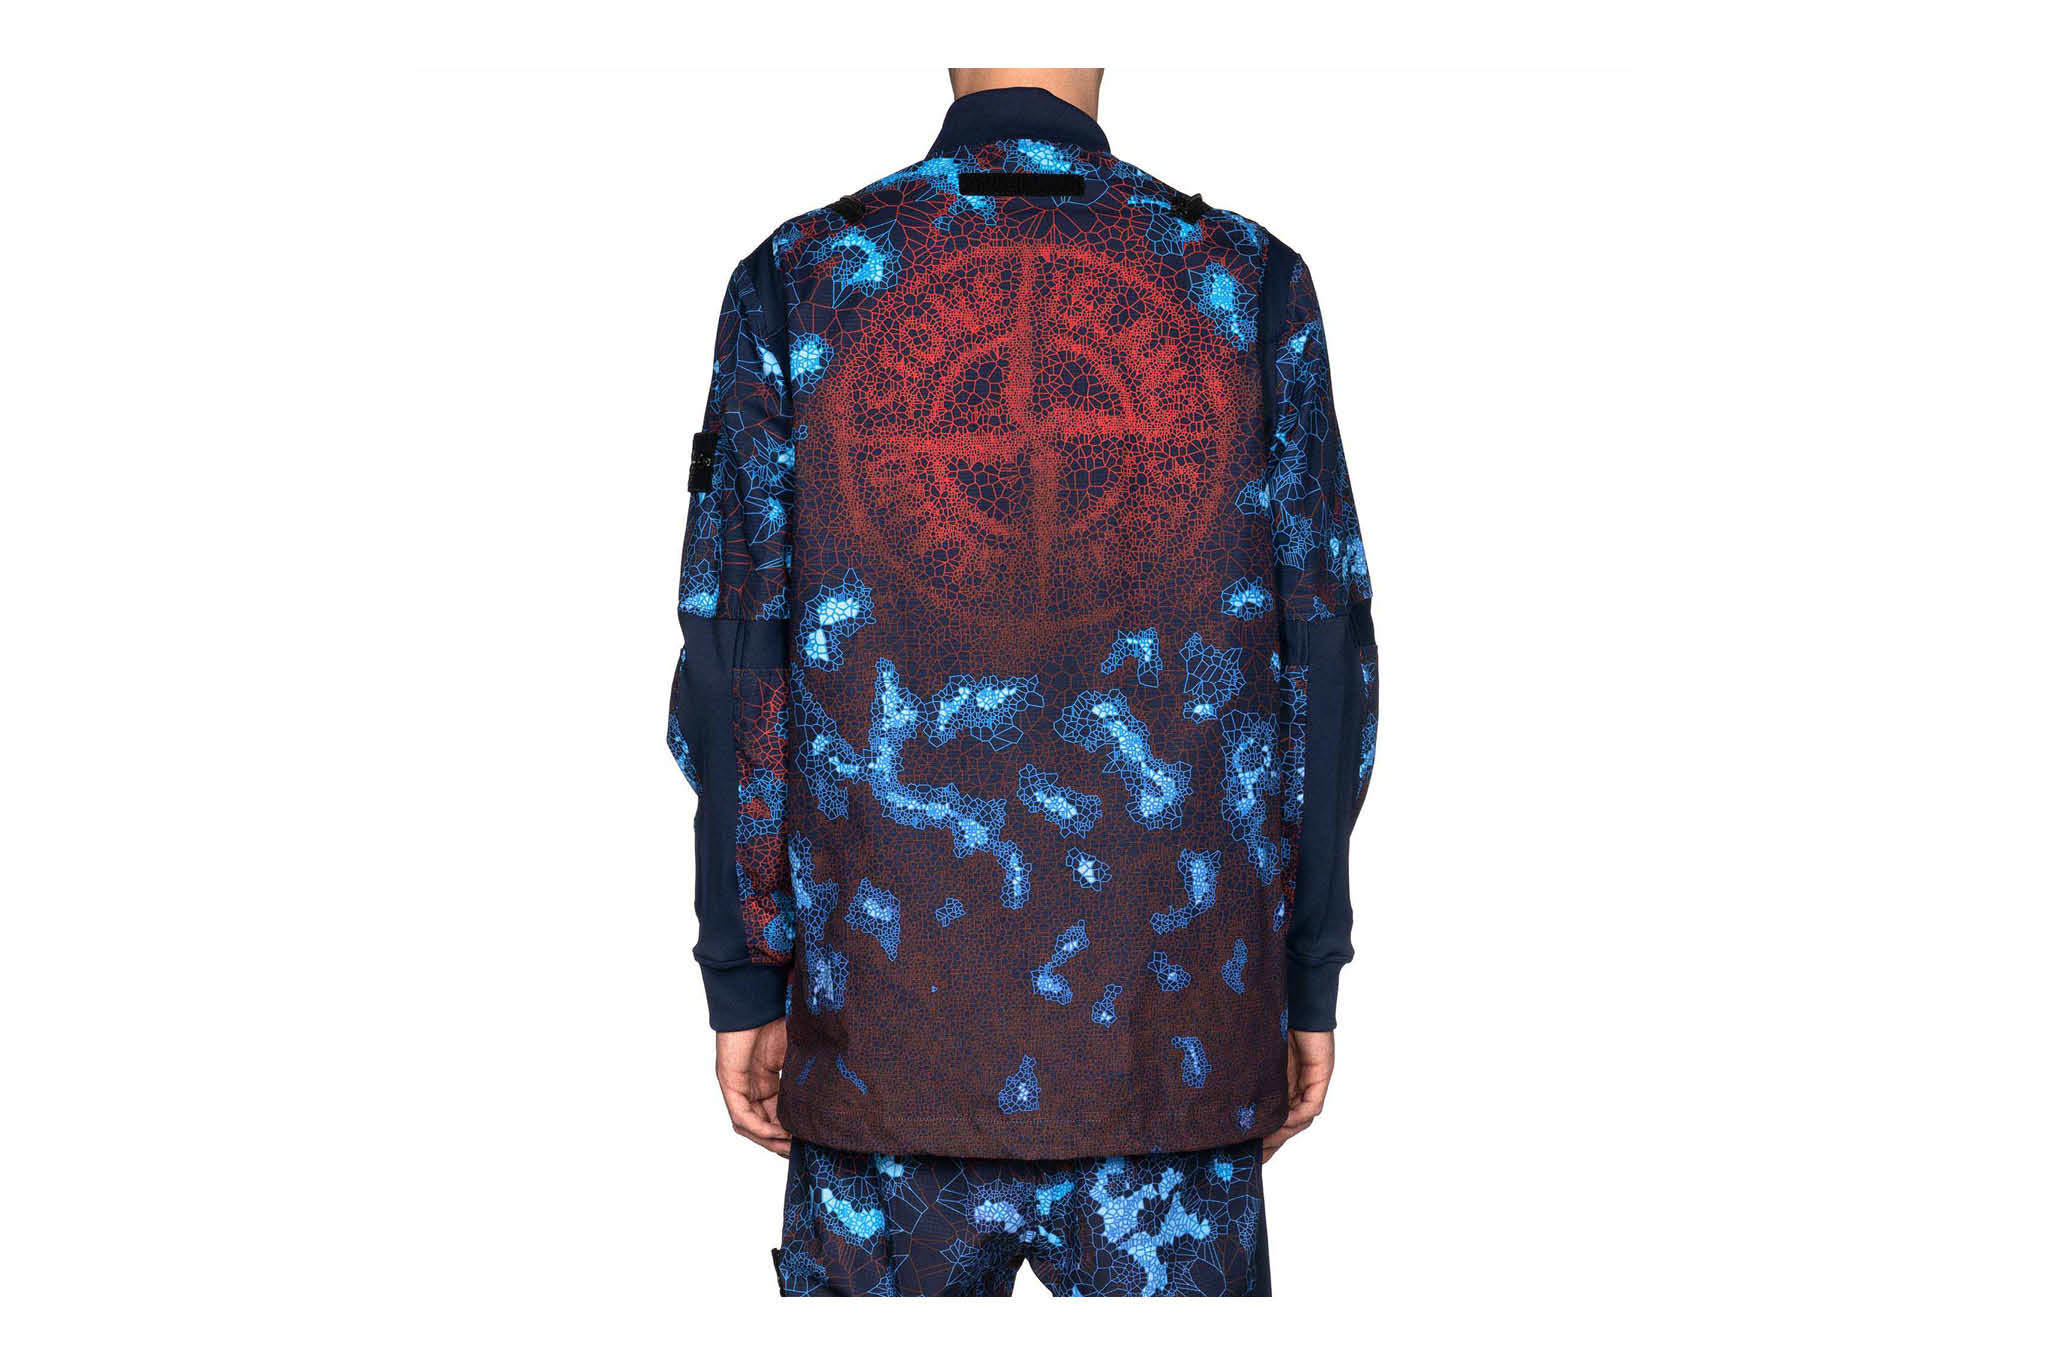 bf000588 Stone Island Introduces Thermosensitive 'Printed Heat Reactive' Capsule |  HAVEN